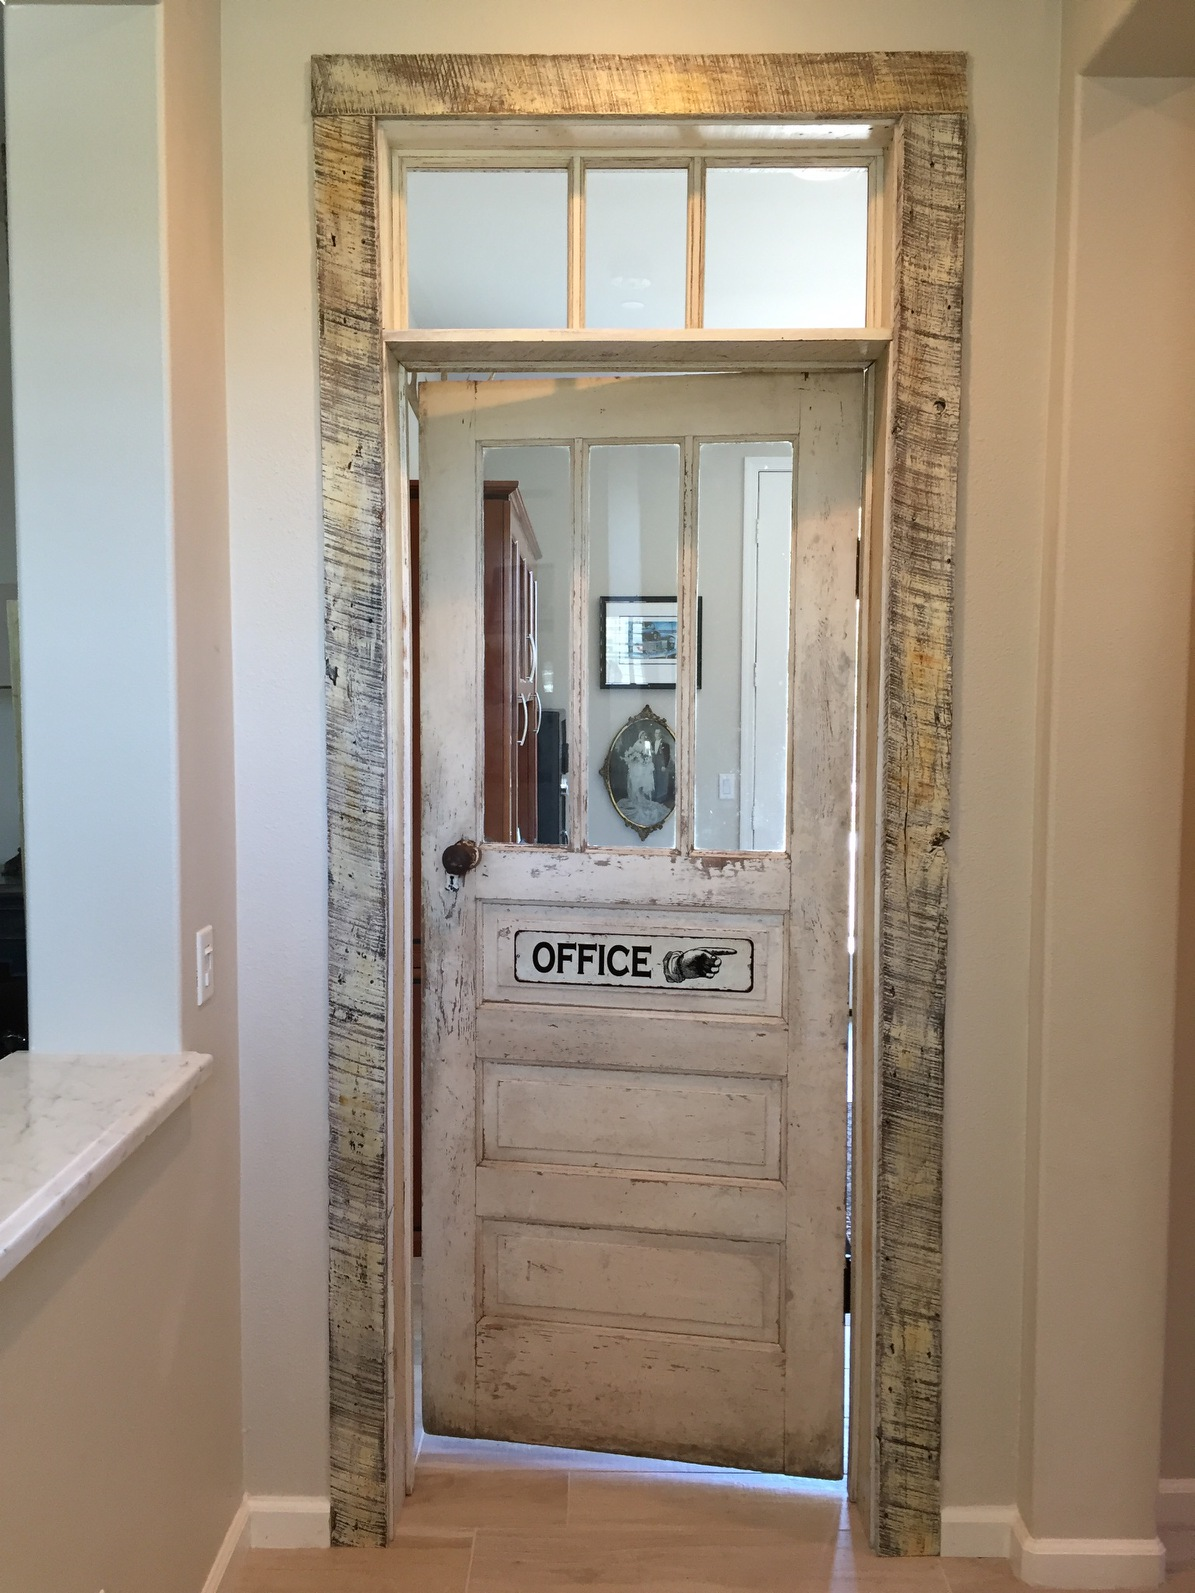 A customer recently purchased a reclaimed vintage wood door for the home office. The door and frame was custom finished to create the perfect accent for entry into the office. U.S. Reclaimed, Vintage Lumber & Wood Works offers a variety of vintage reclaimed doors. The vintage wood doors range in colors and sizes. Visit the store to check out the reclaimed wood and all other reclaimed inventory.